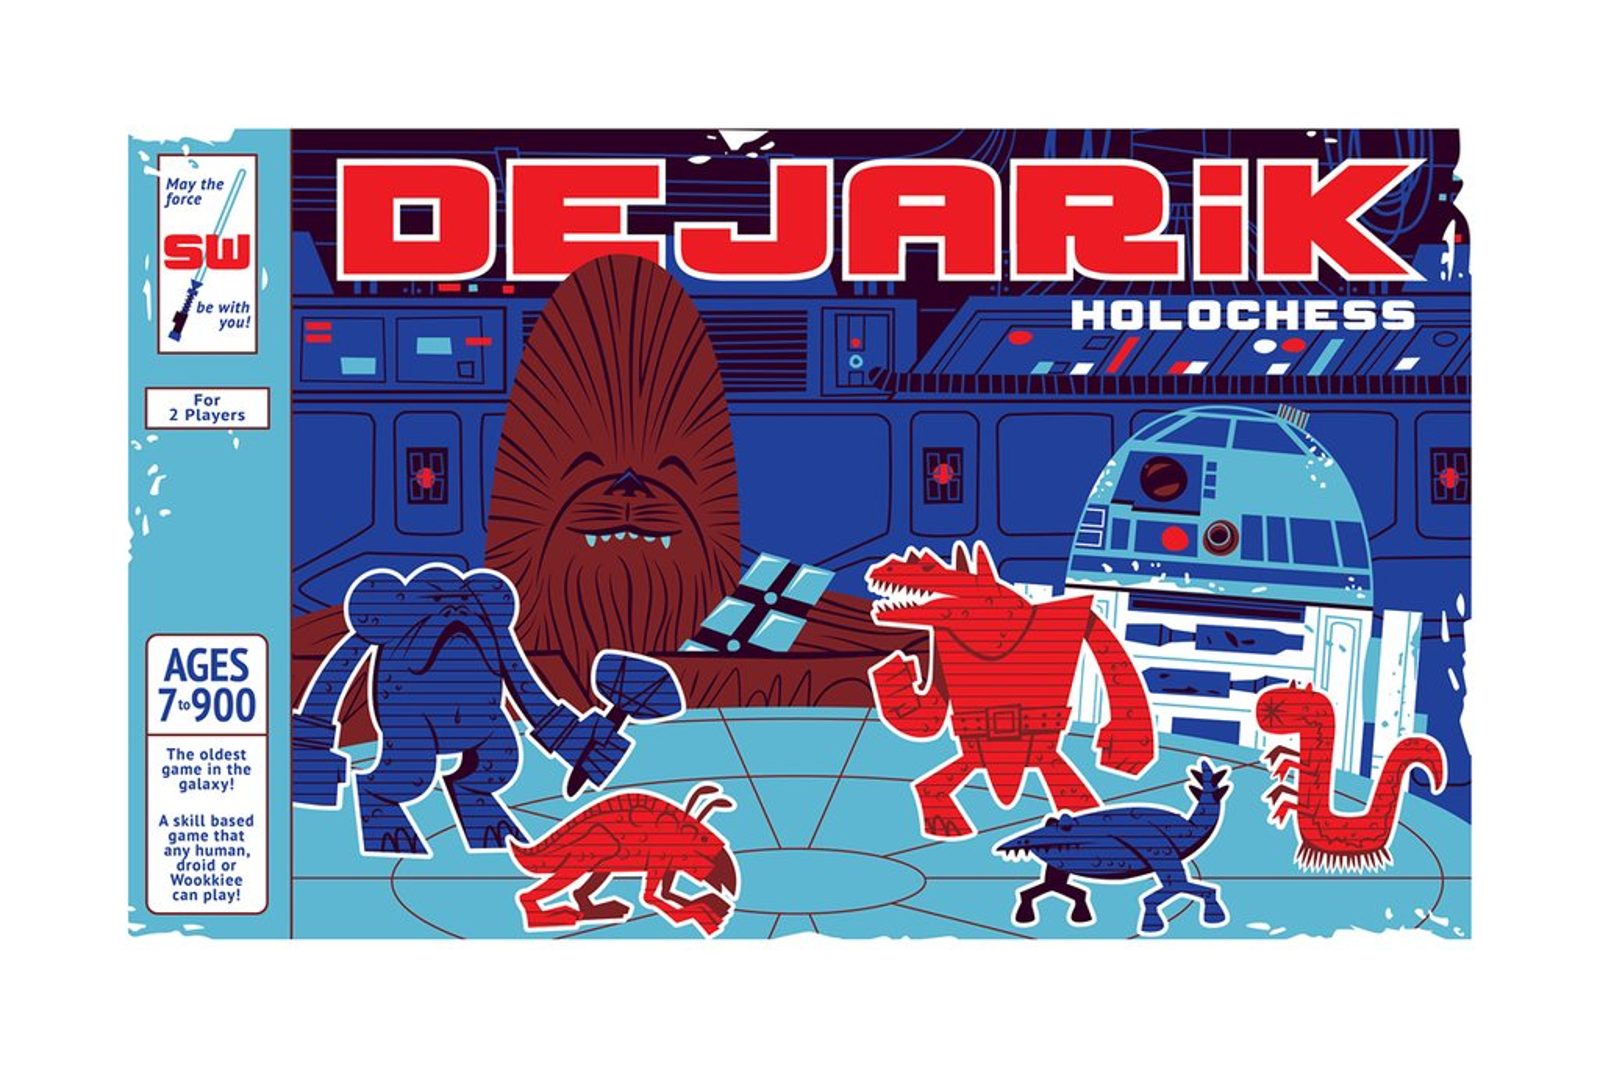 Dejarik: Holochess by Doug LaRocca